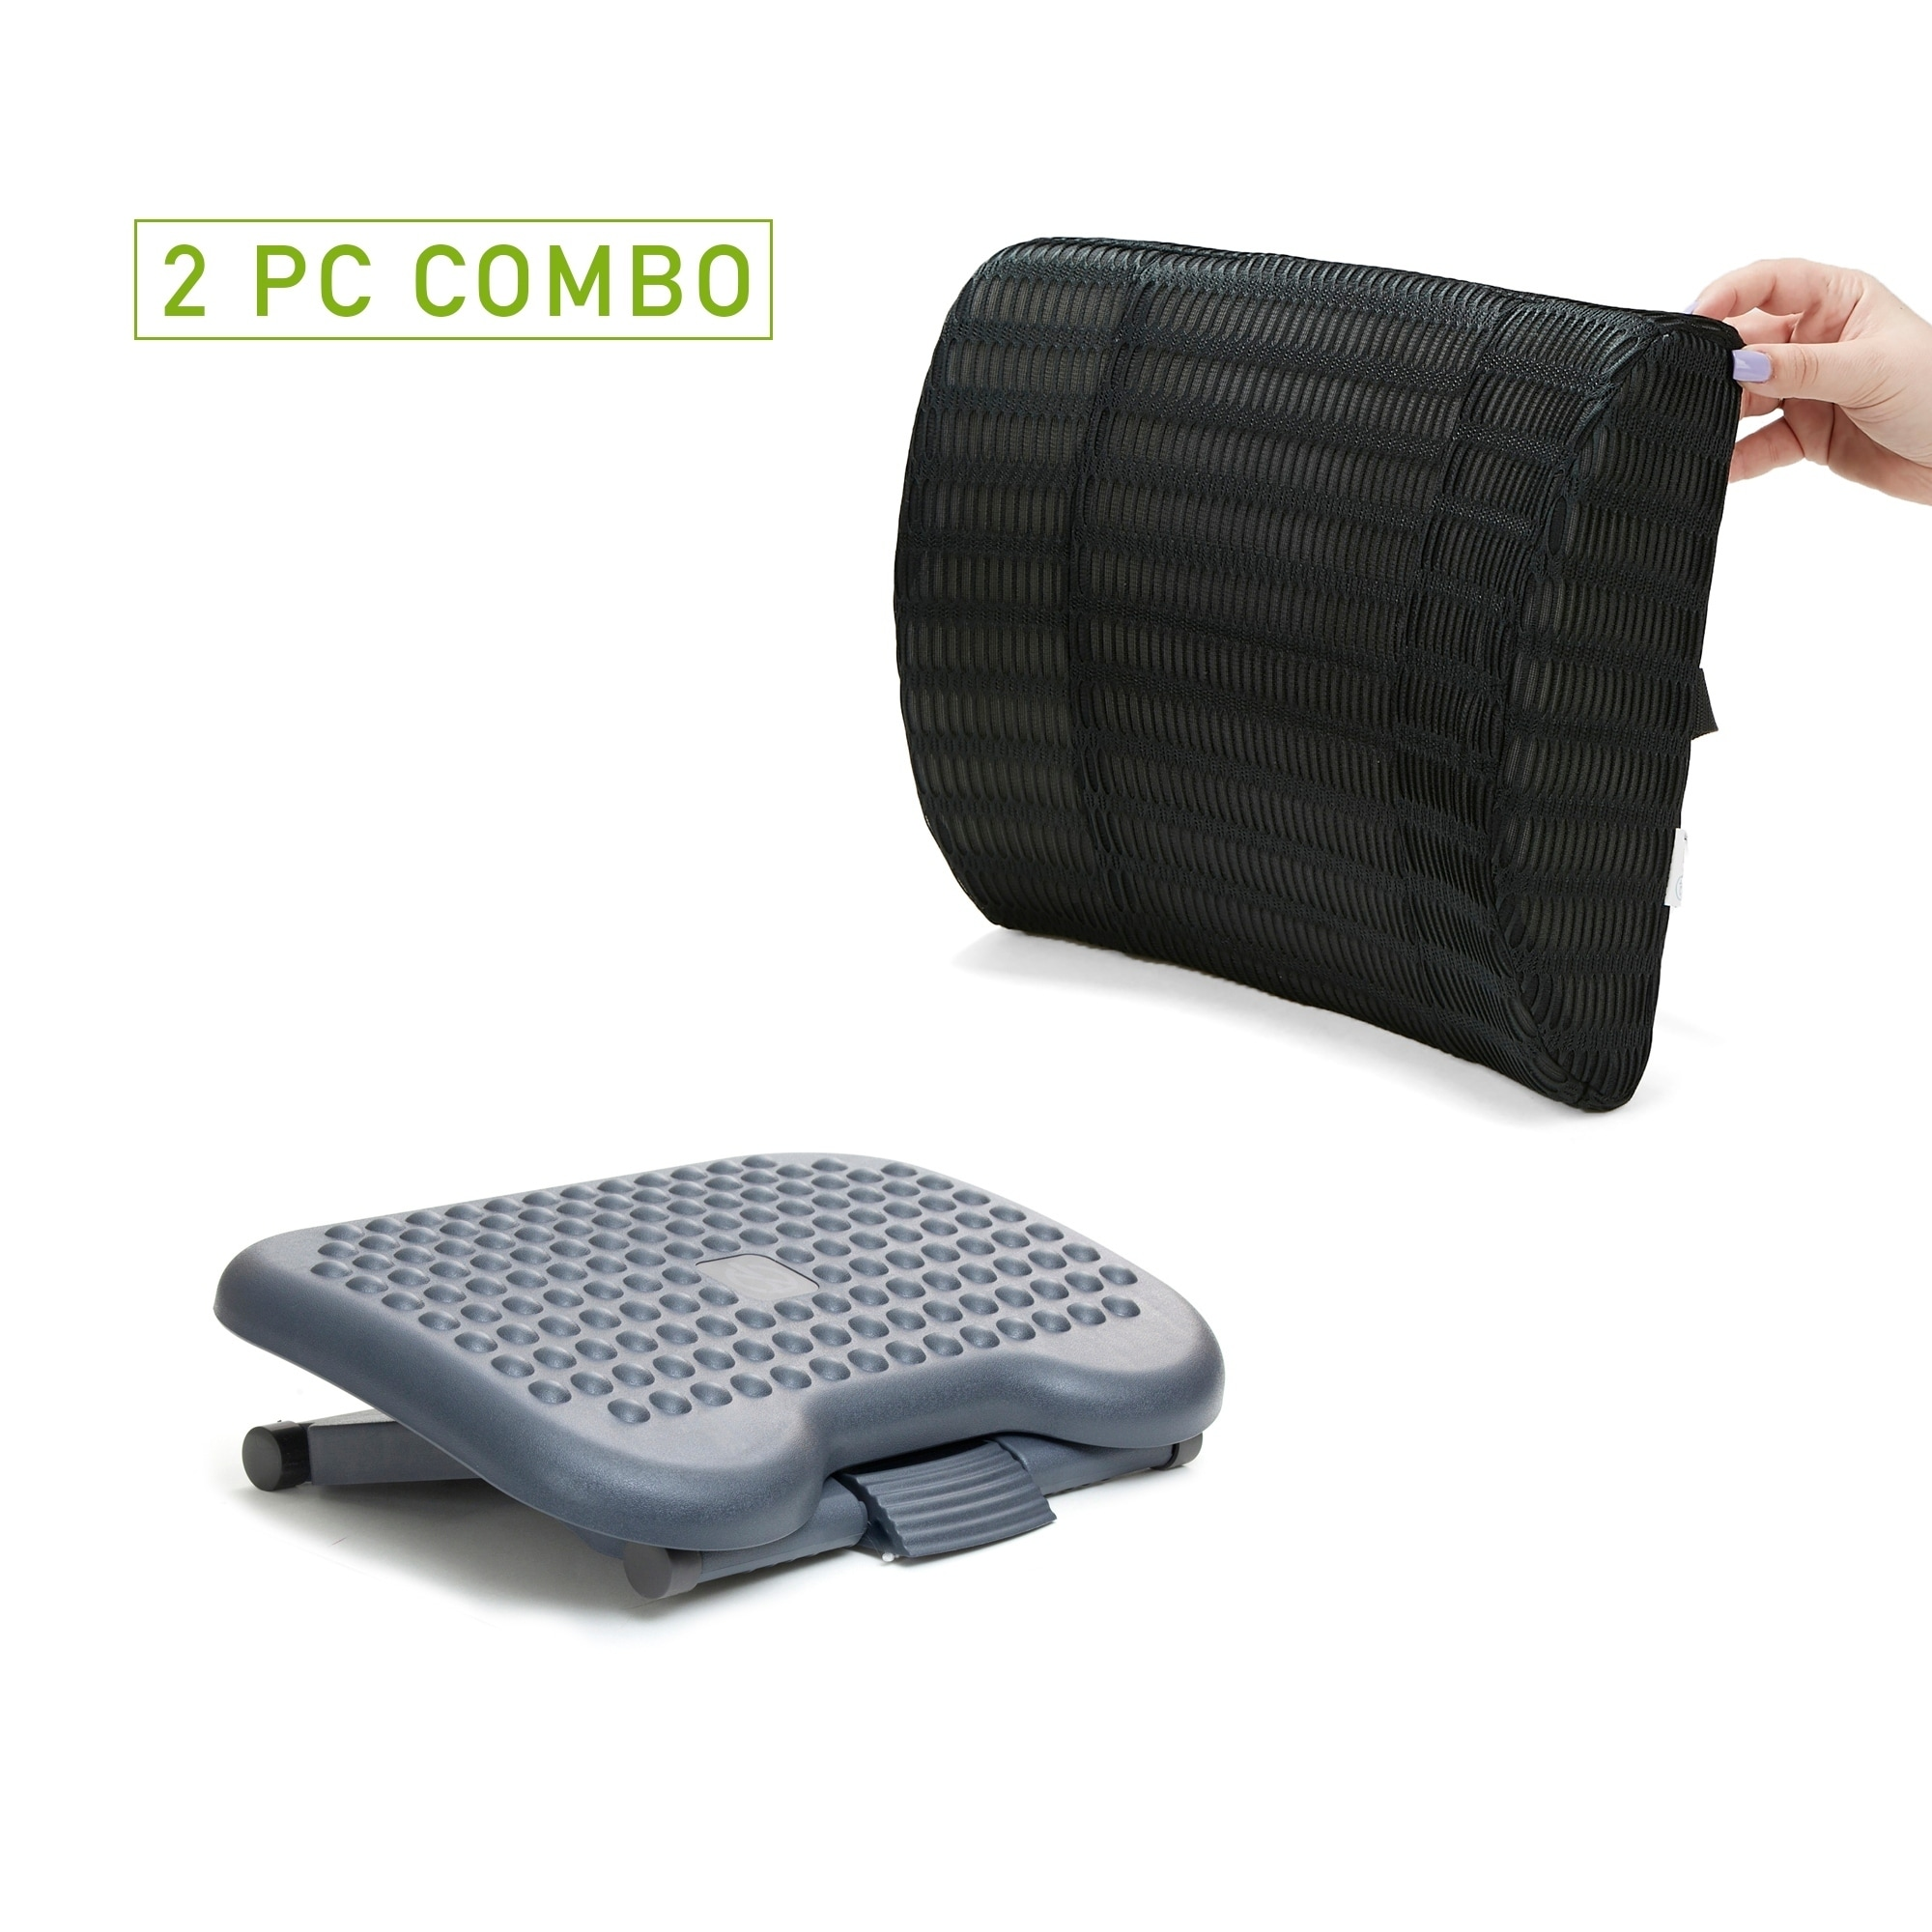 Mind Reader Memory Foam Lumbar Support Back Cushion with Mesh Cover for Back Pain Relief with Height Adjustable Foot Rest, Black